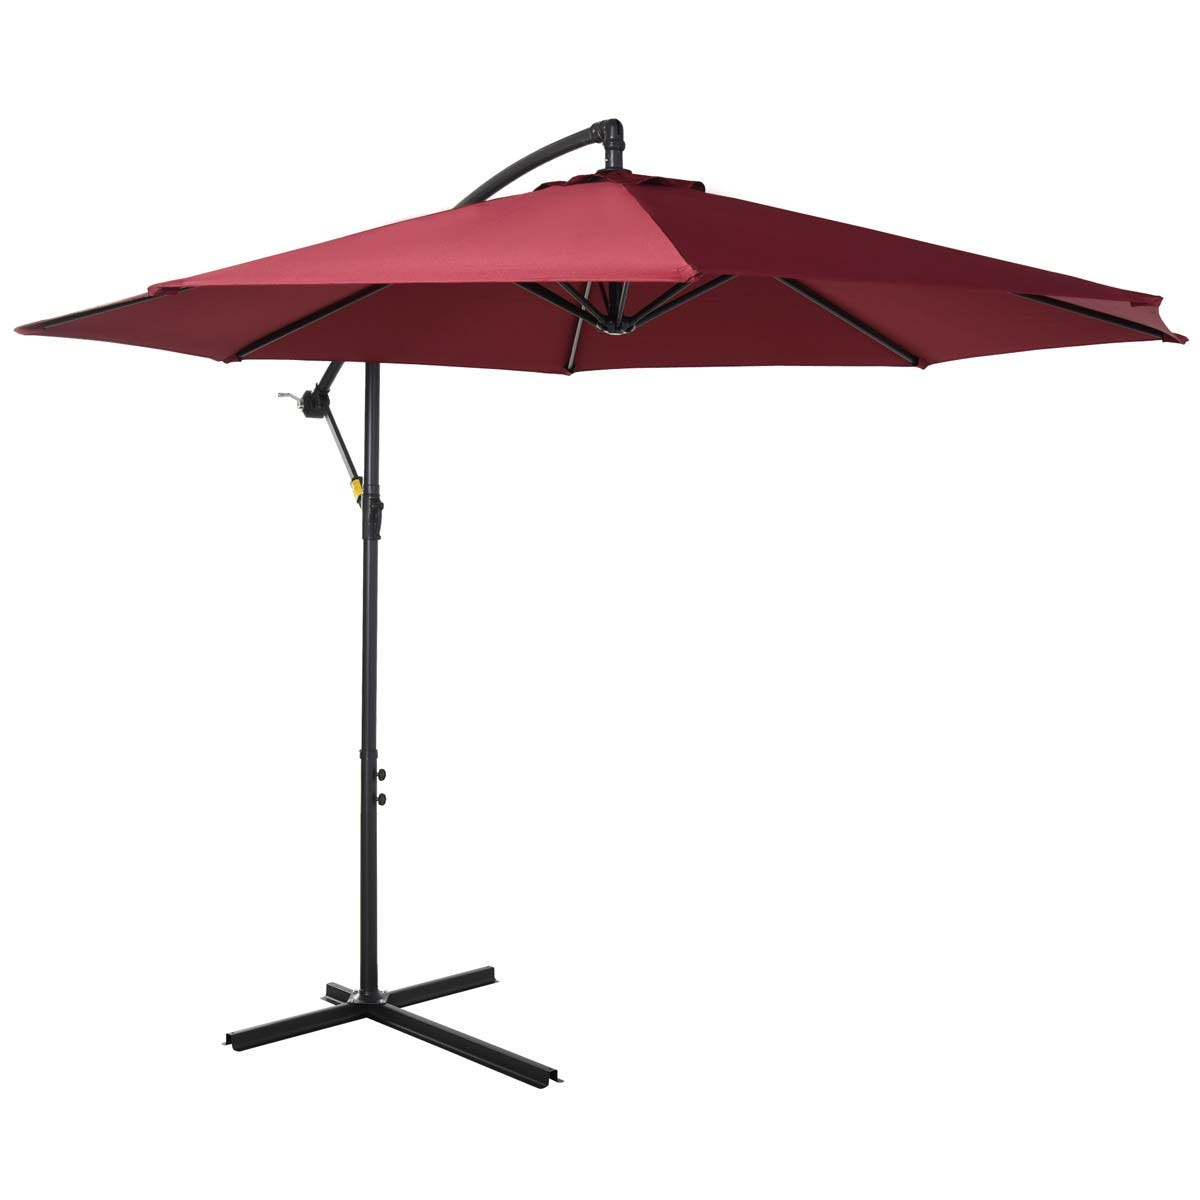 Outsunny 3m Banana Cantilever Parasol (base not included) - Red